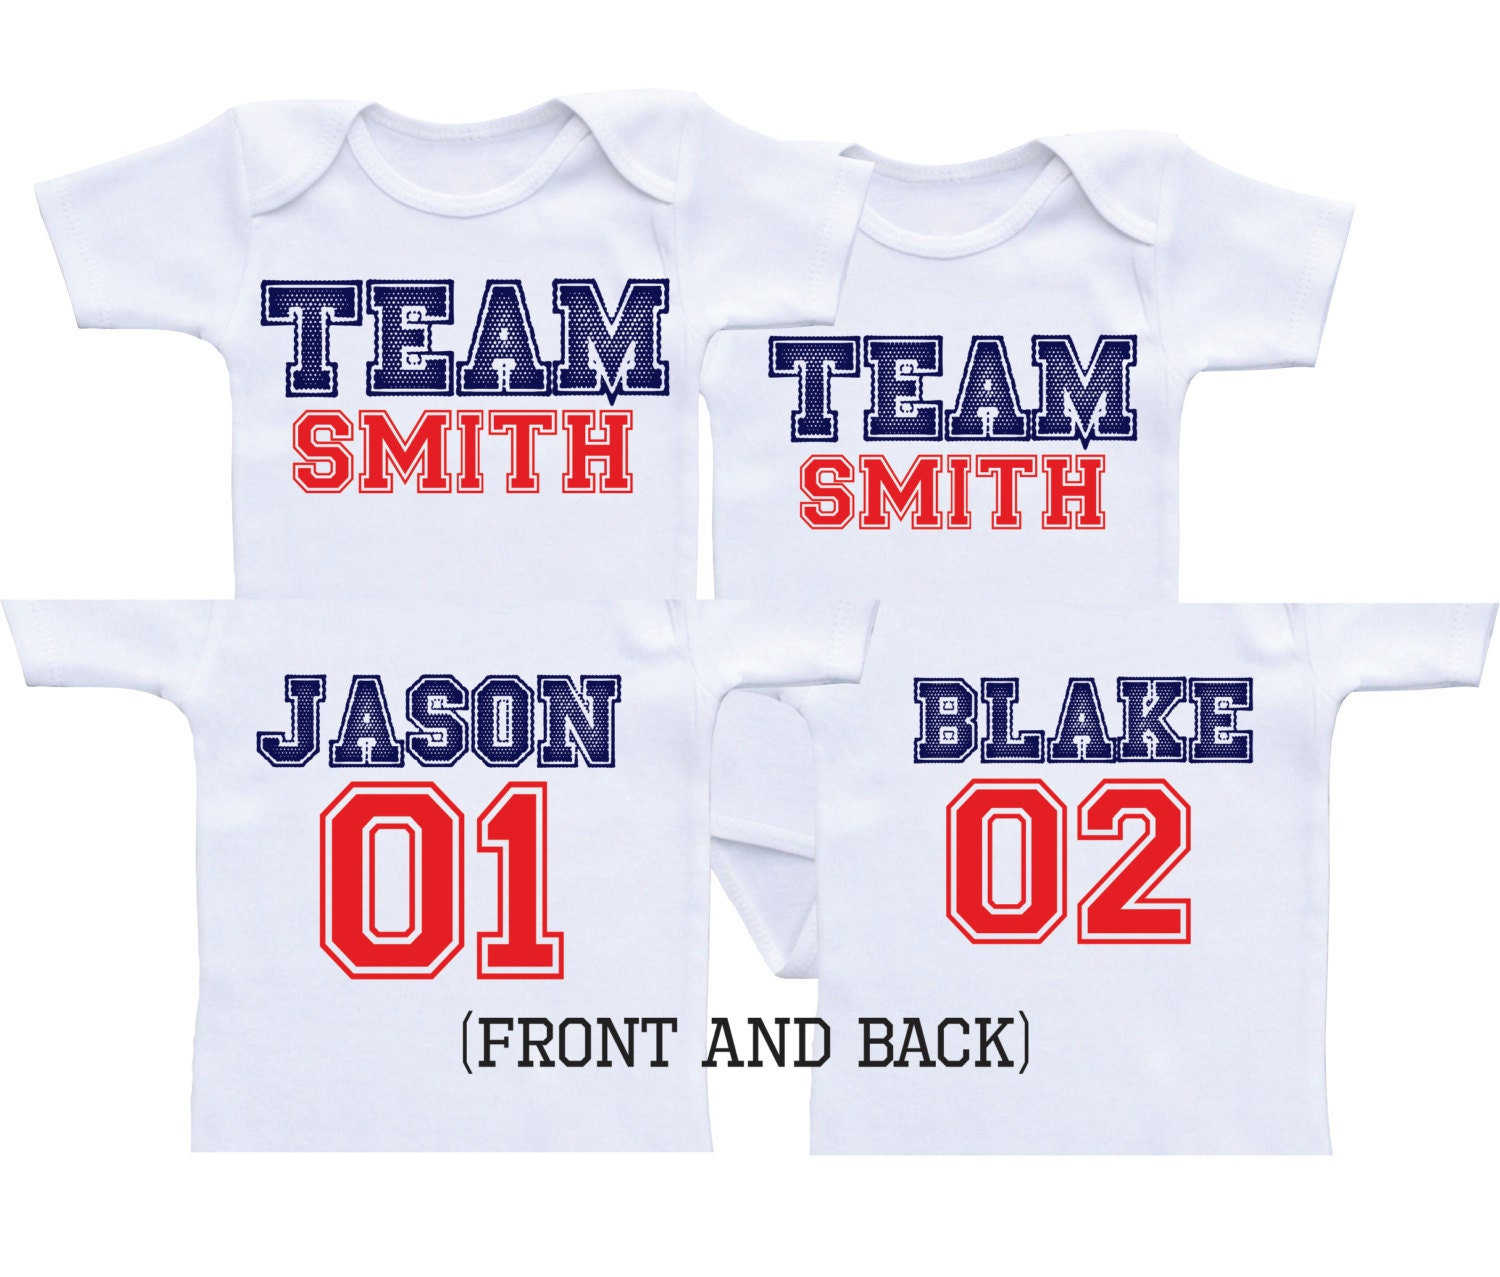 0541887fa2c Sports twin boy onesies boy twins baby gifts twin shirts twins etsy jpg  1500x1277 Twin boy